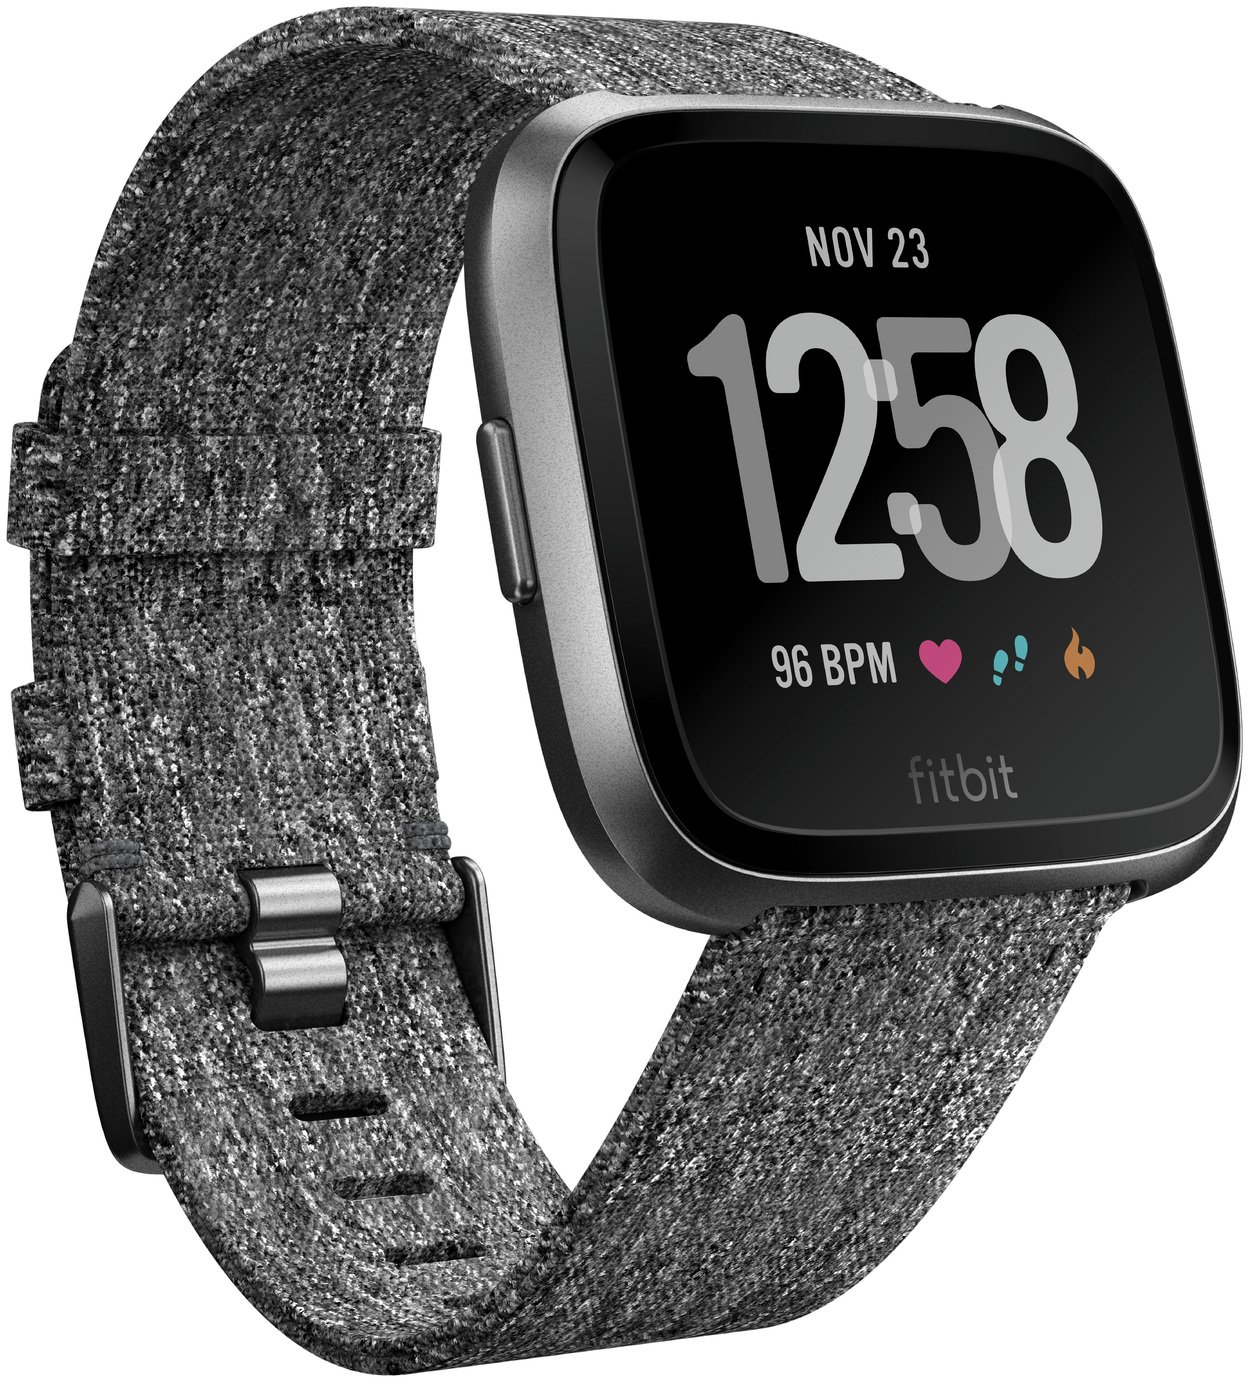 Fitbit Versa Special Edition Smart Watch - Charcoal